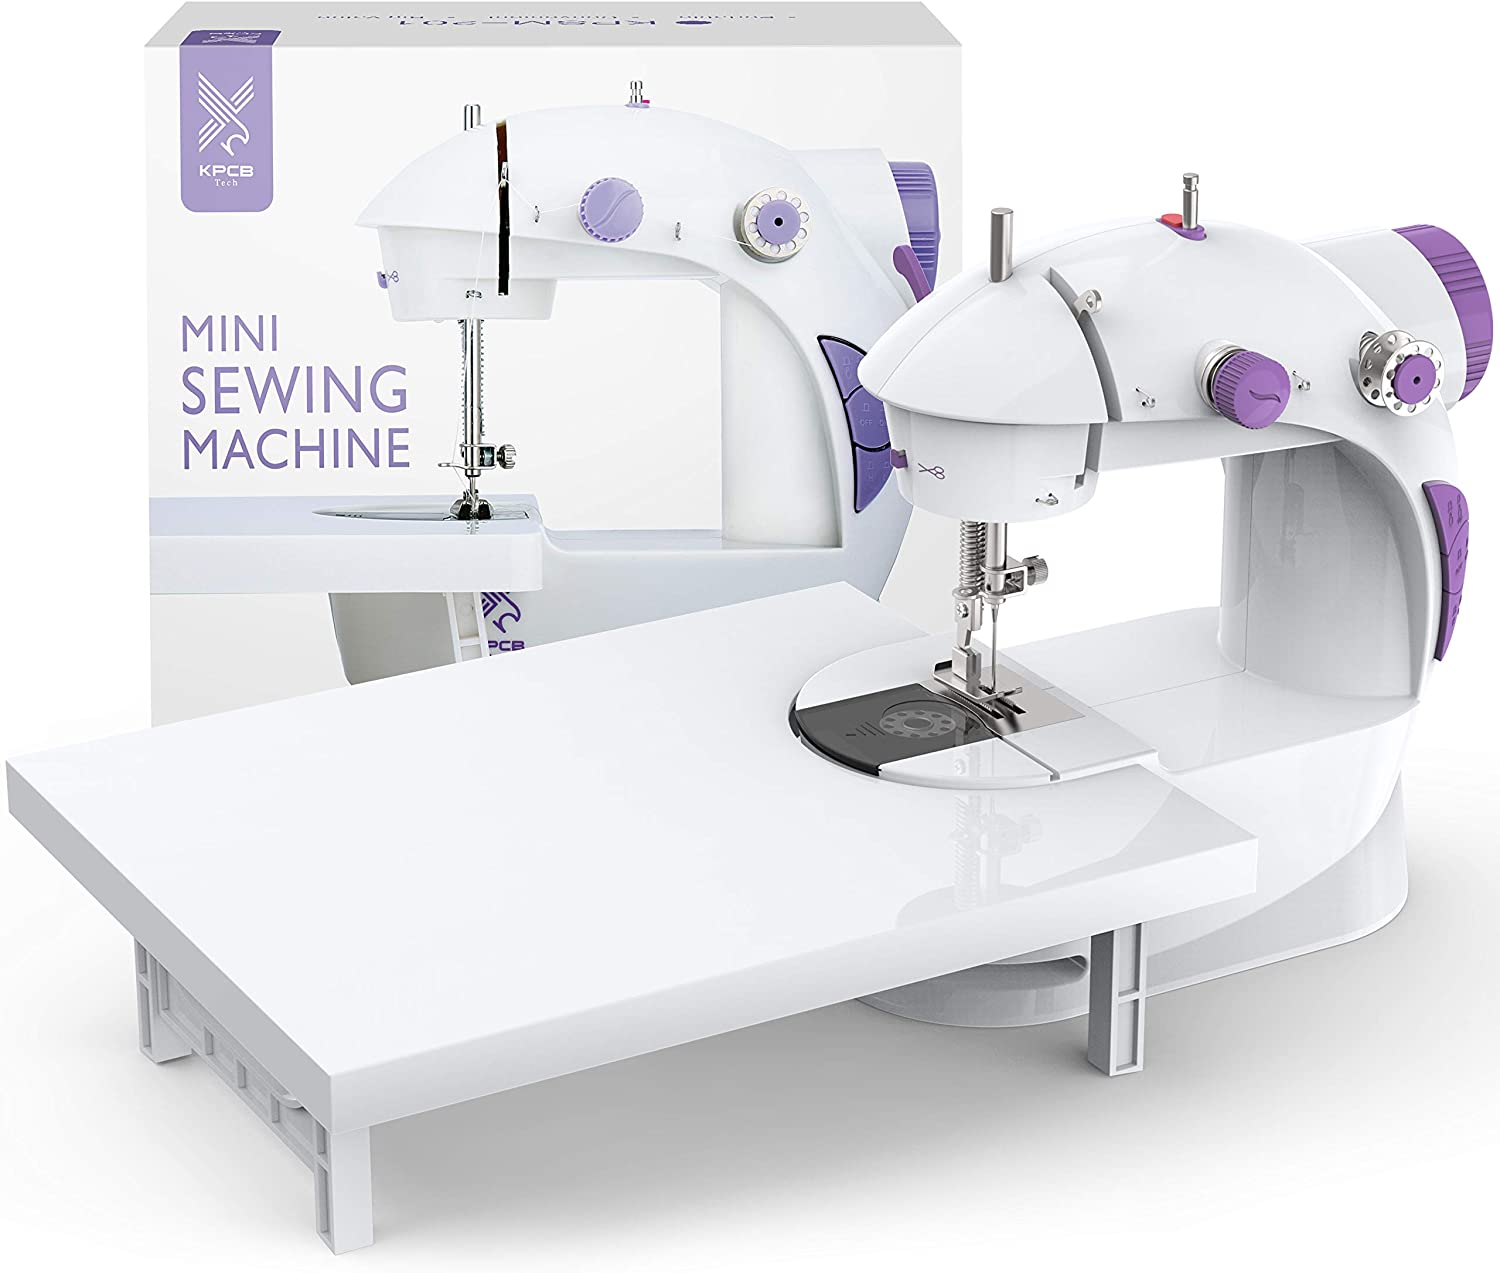 Best Compact Mechanical Sewing Machine: KPCB Mini